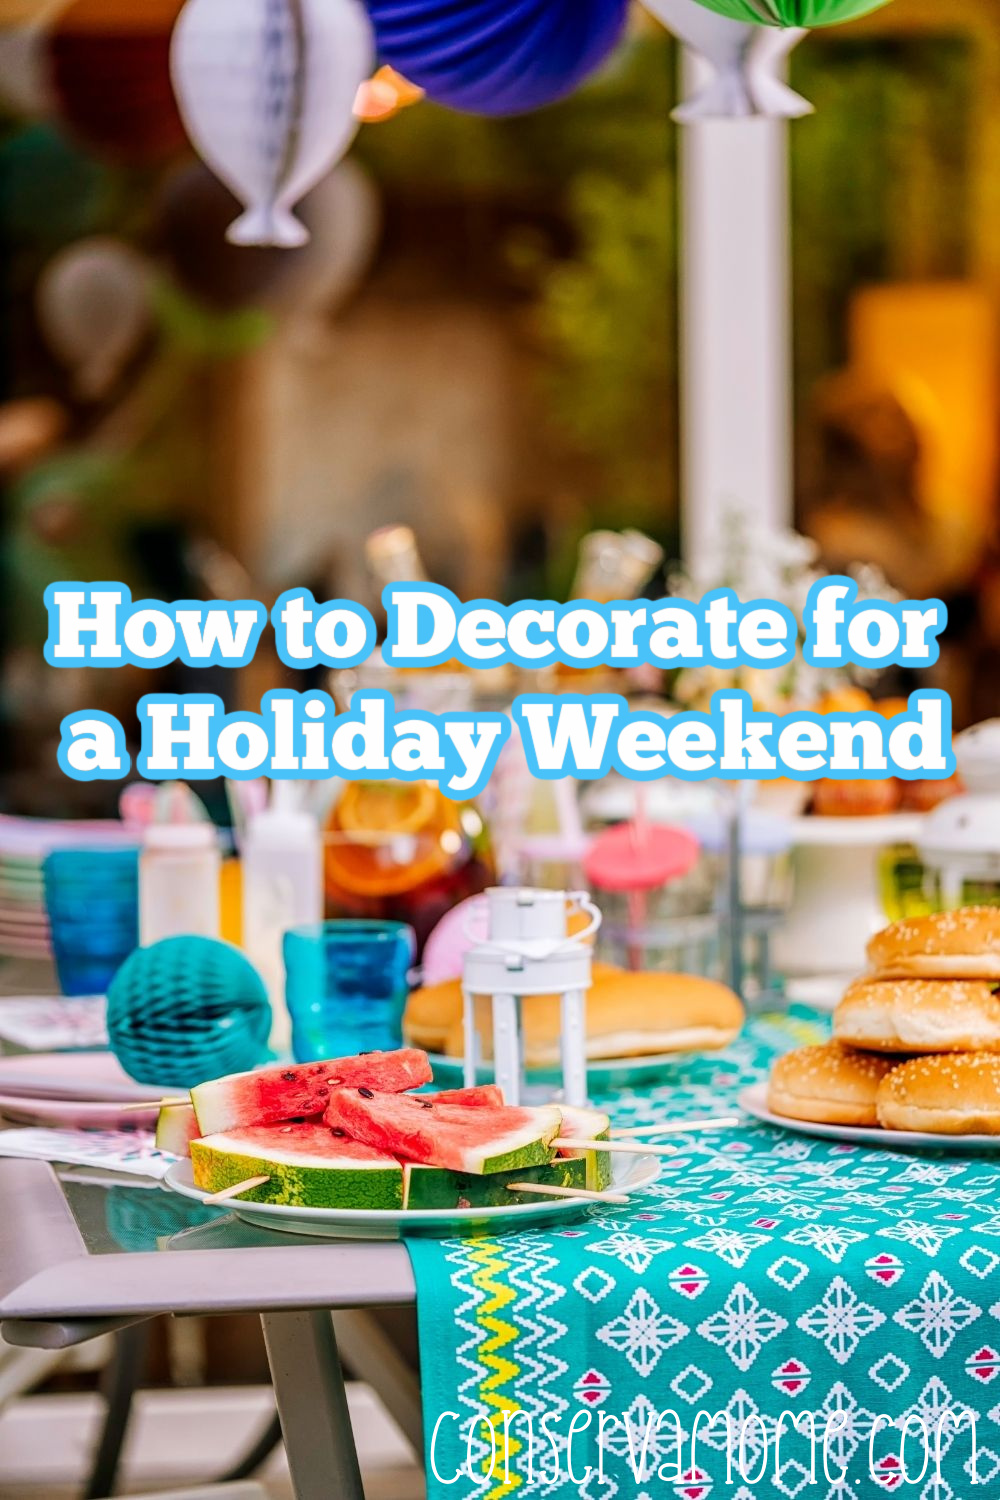 How to Decorate for a Holiday Weekend